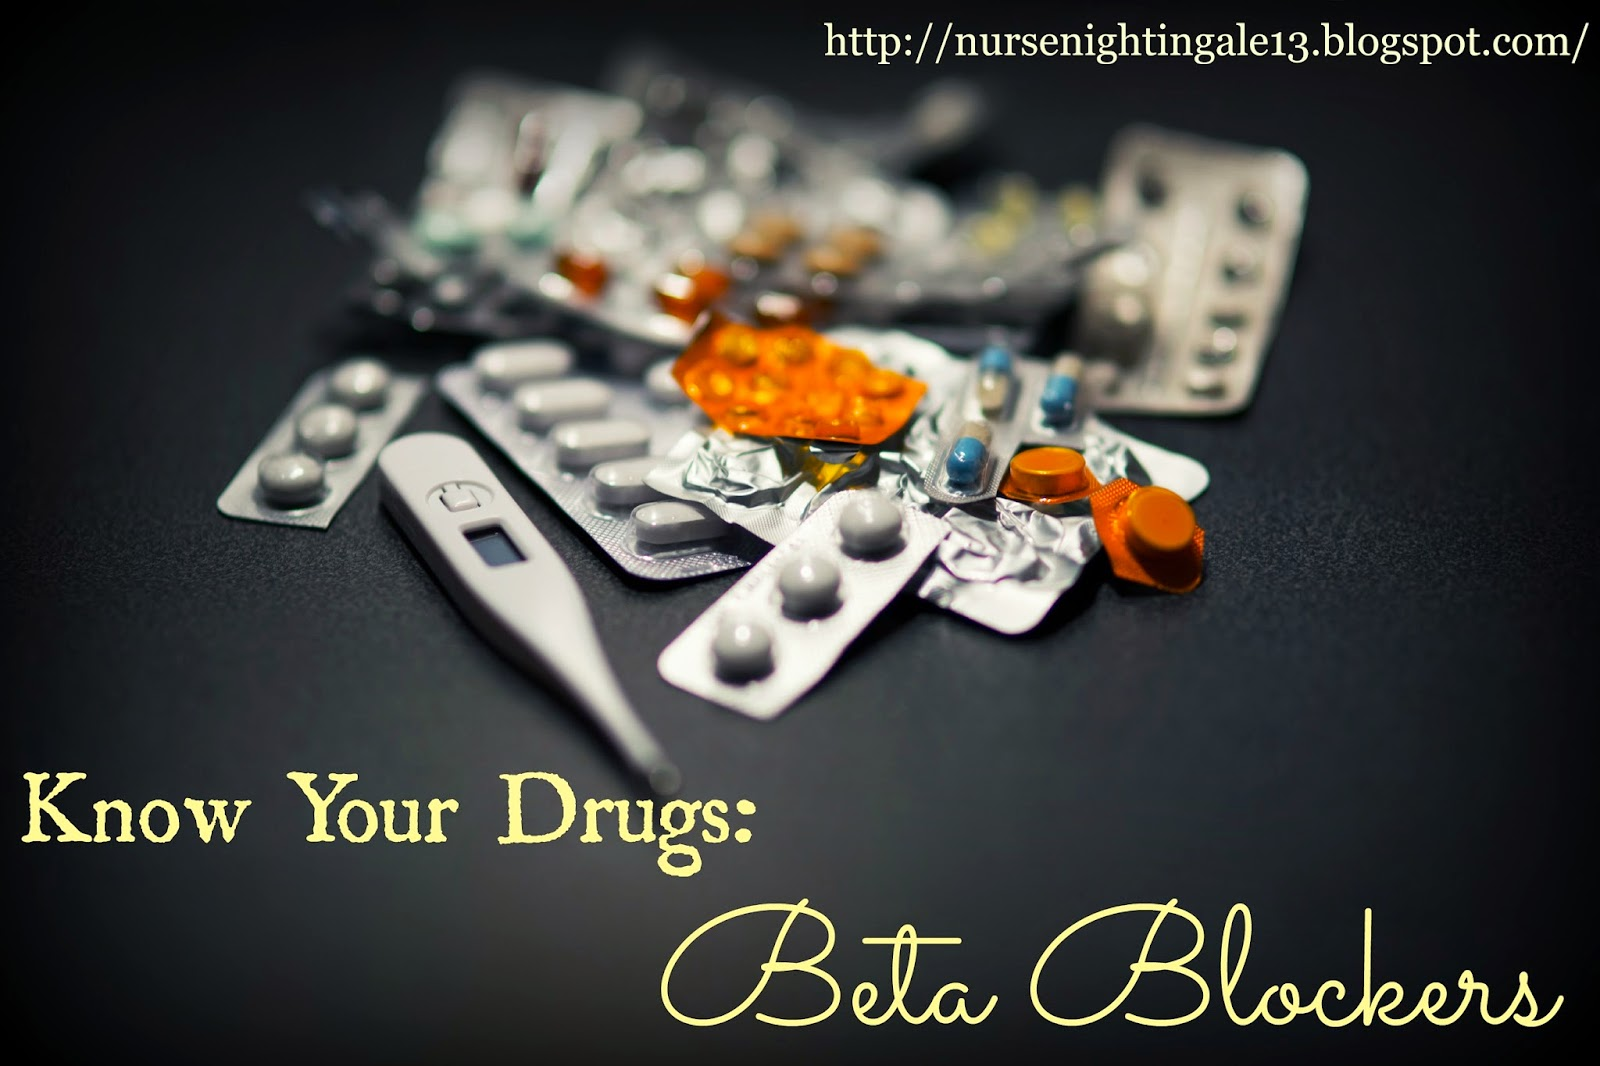 Beta Blocker, Pharmacology, nursing student, nurse, heart, nclex, nurse, medicine